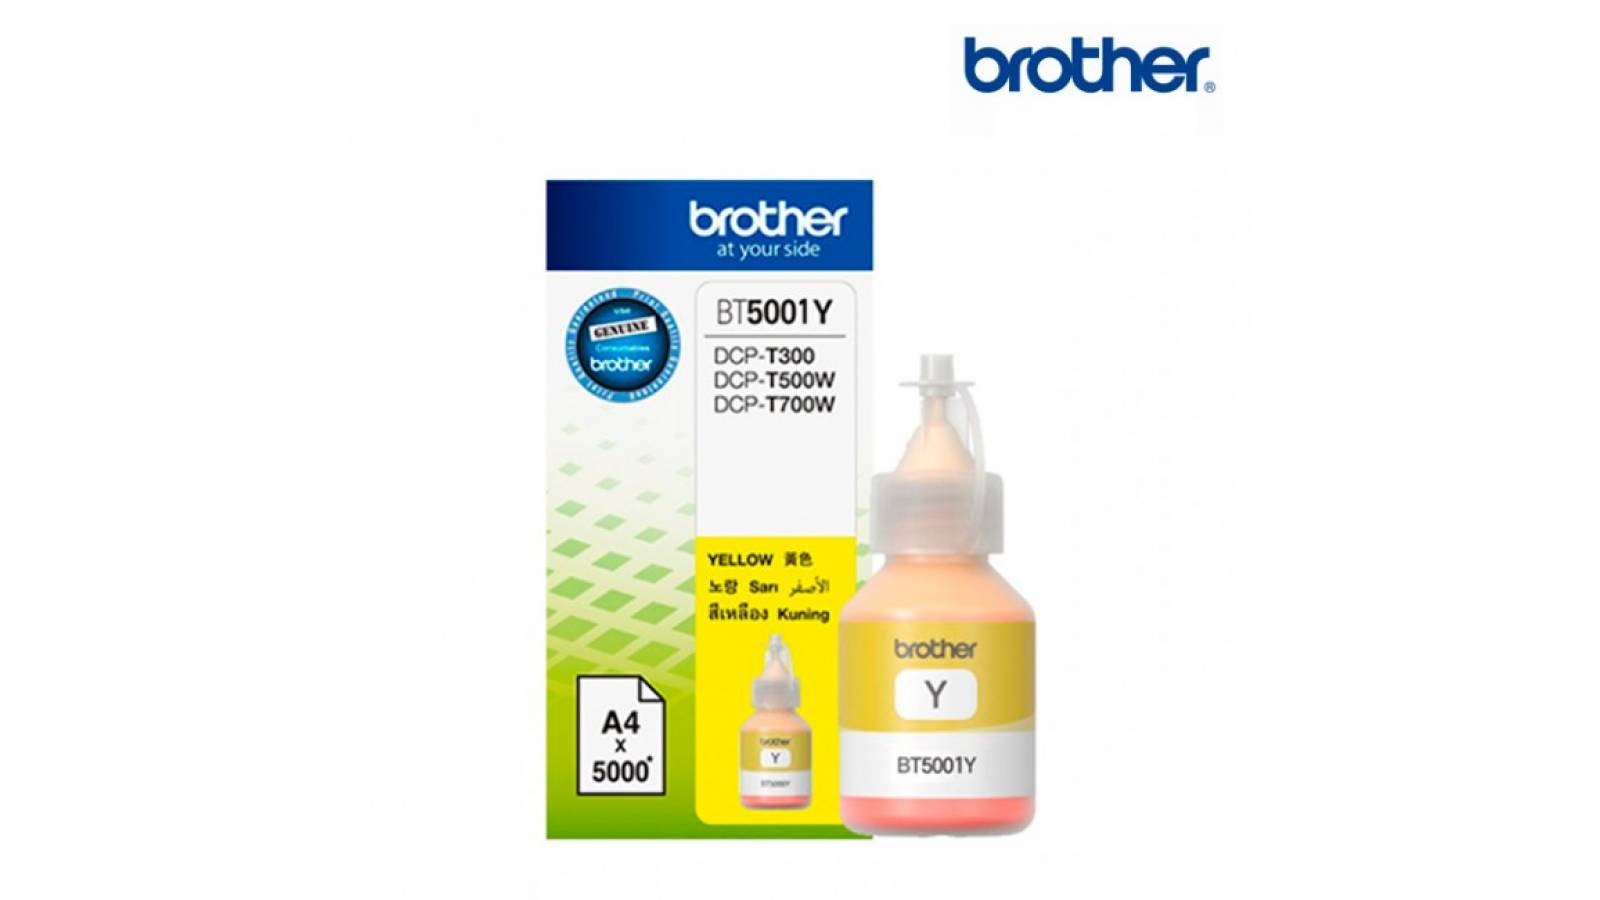 Botella de tinta Brother BT-5001 Amarilla